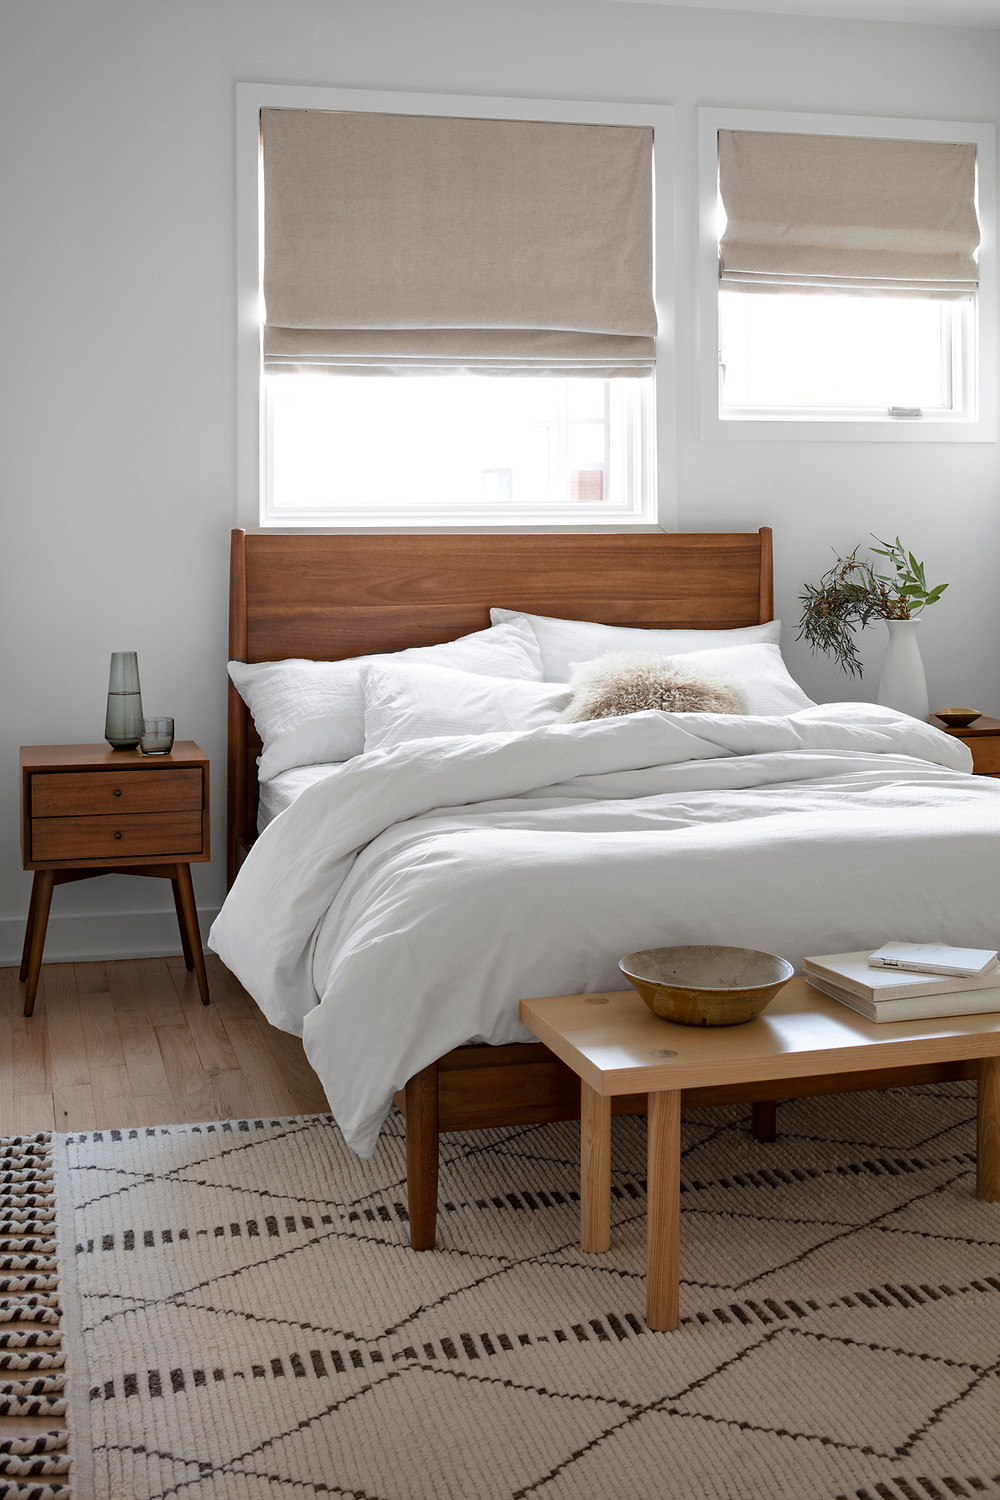 Calming neutral bedroom with geometric patterned rug and wooden bed frame.